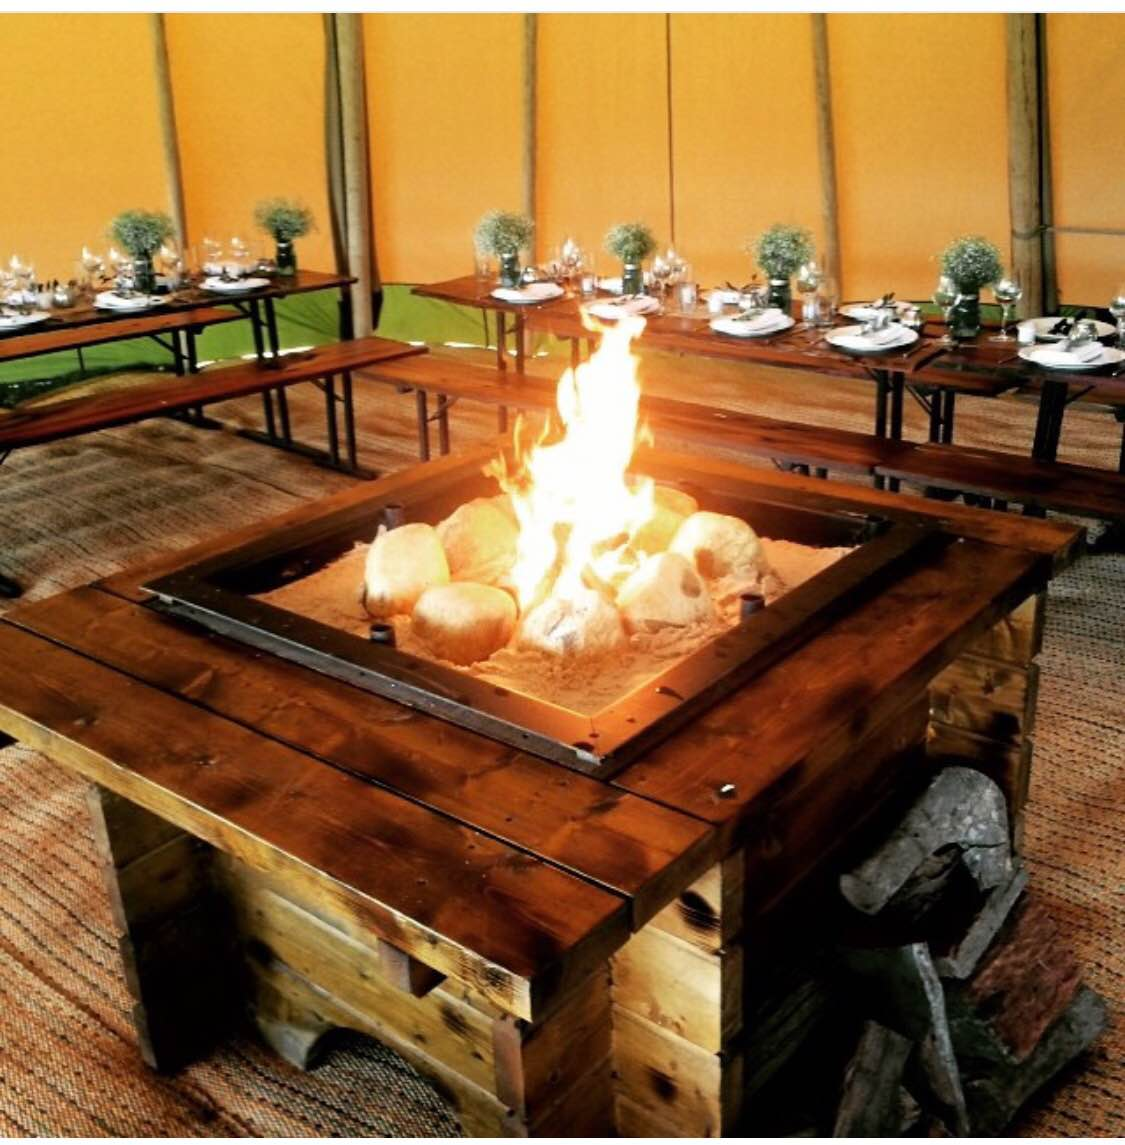 marquee hire, party hire, tipi, teepee, event, wedding, function, tent